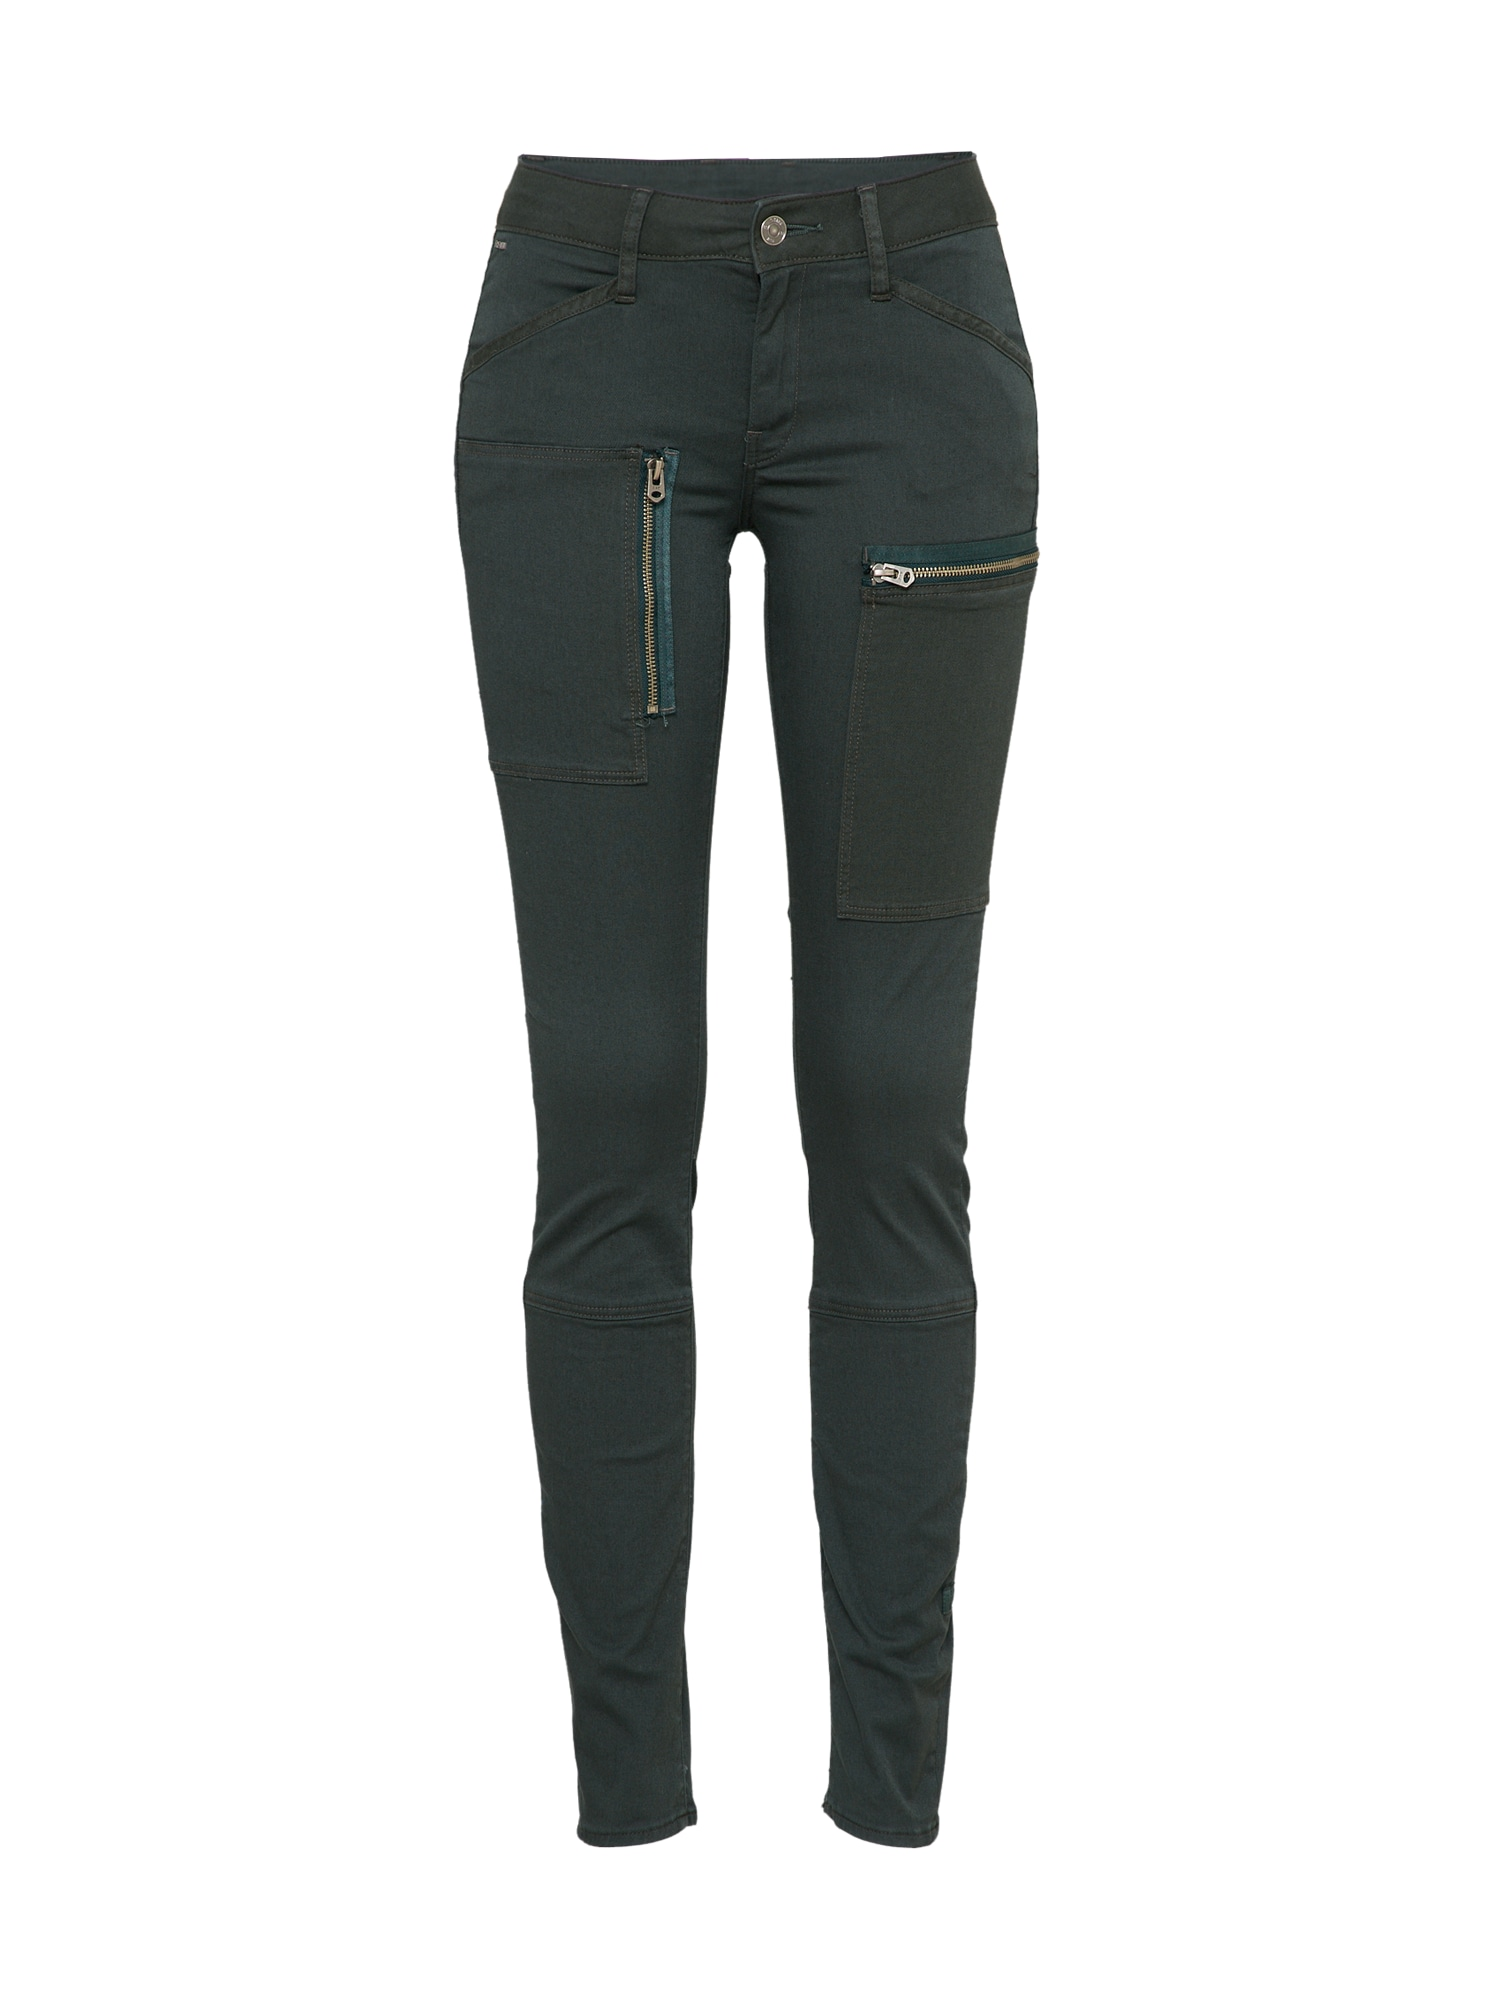 G-STAR RAW Dames Jeans Powel groen